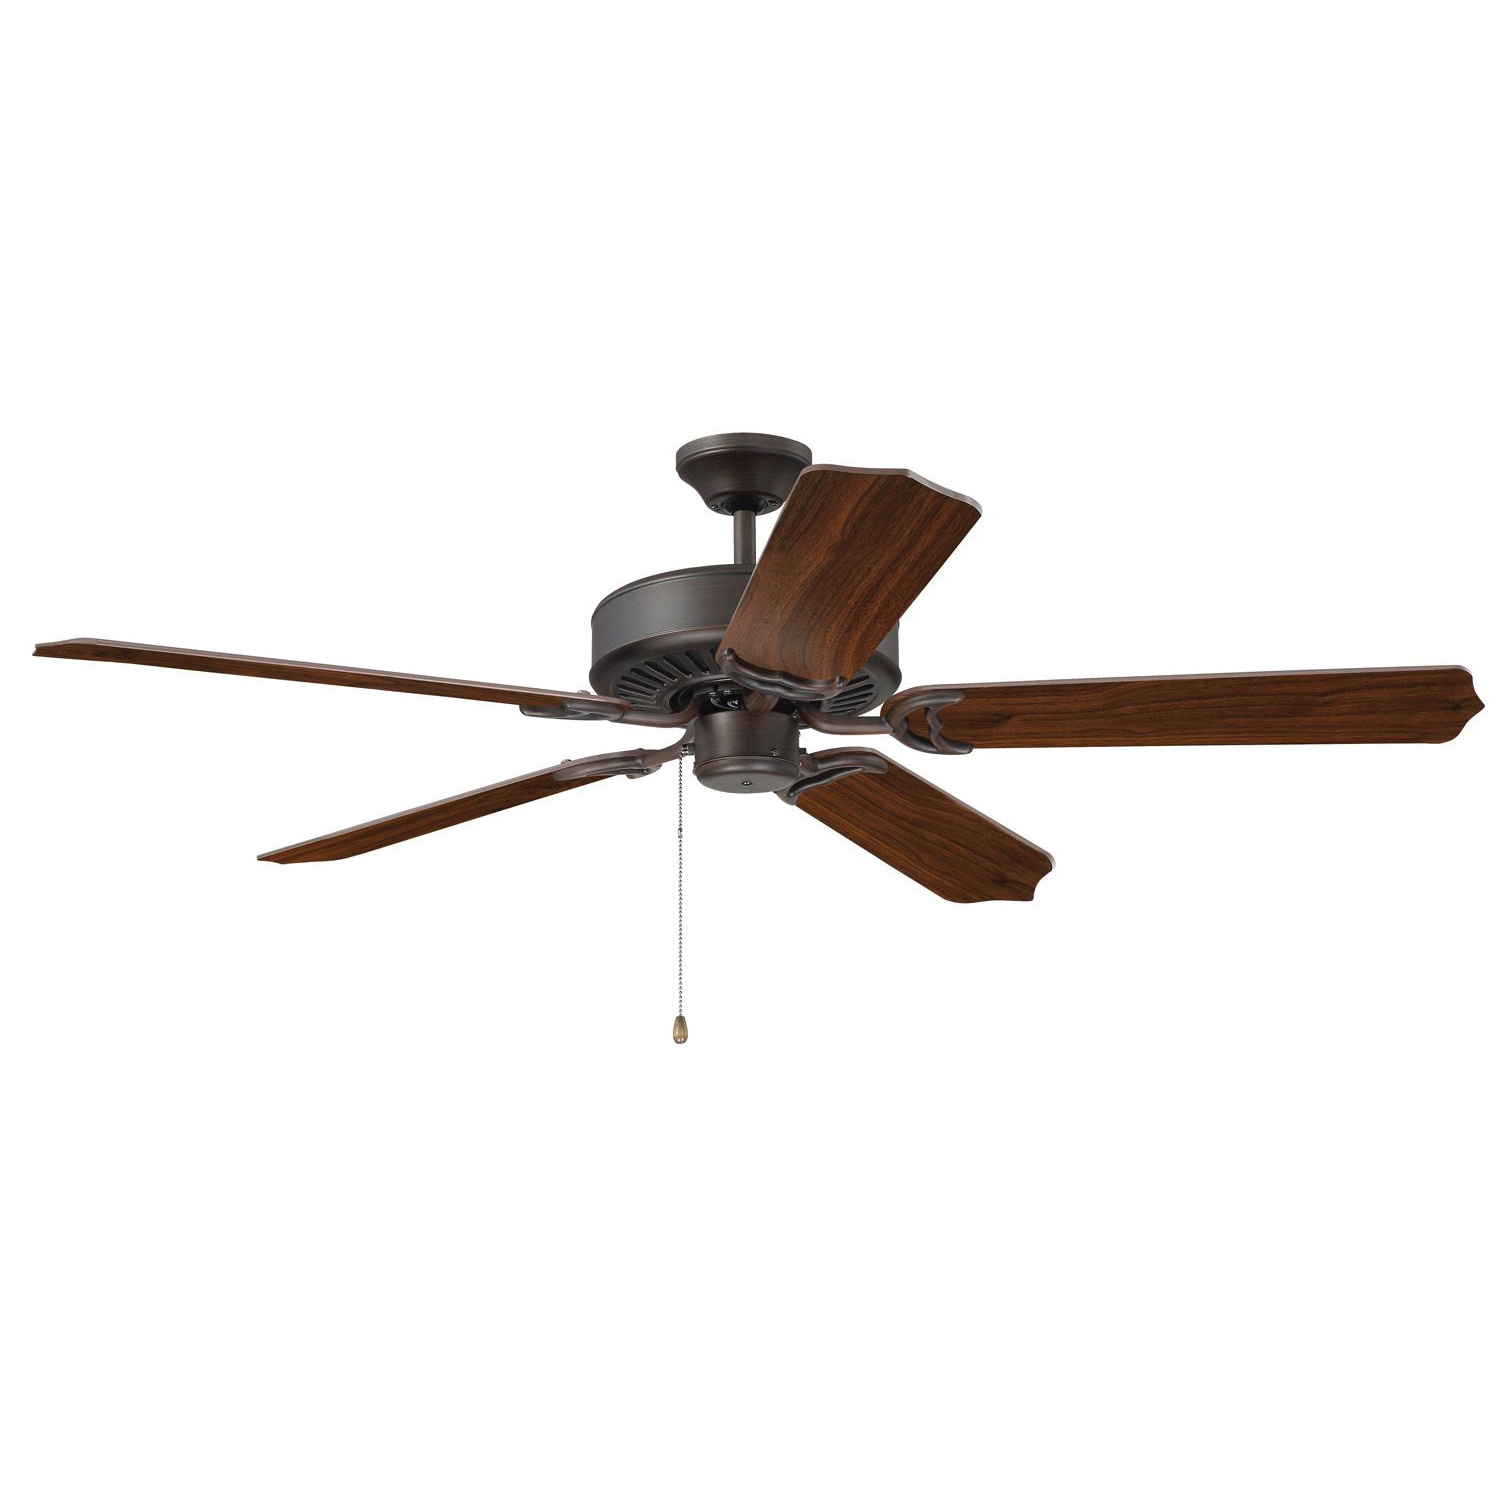 Craftmade ces52abz pro energy star ceiling fan 52 inch 5 blade aged craftmade ces52abz pro energy star ceiling fan 52 inch 5 blade aged bronze brushed aloadofball Images